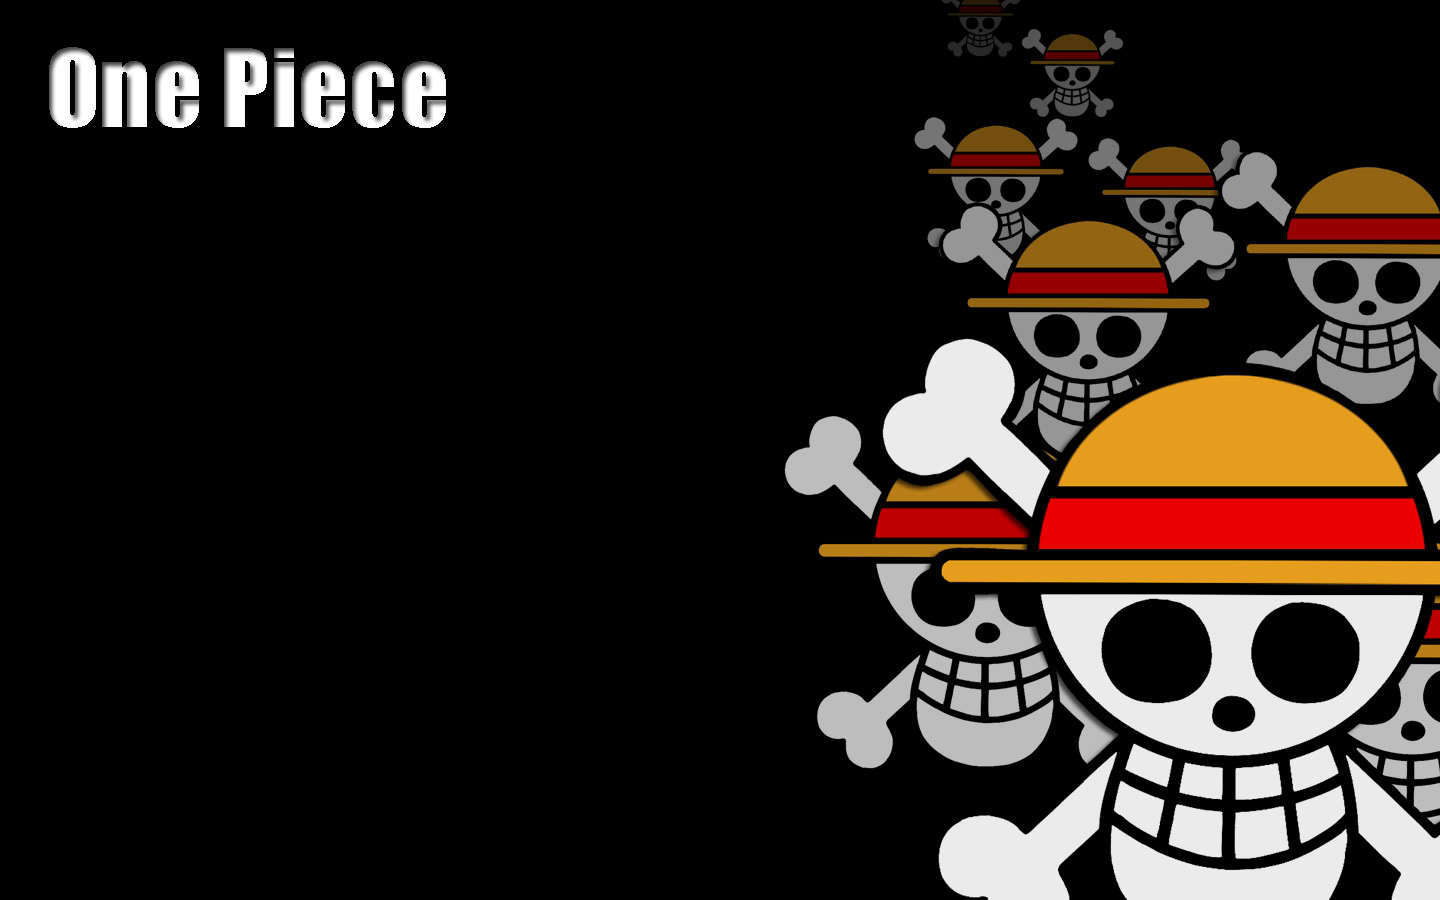 Free Download Naruto Onepiece Anime One Piece Pirate Flag Jolly